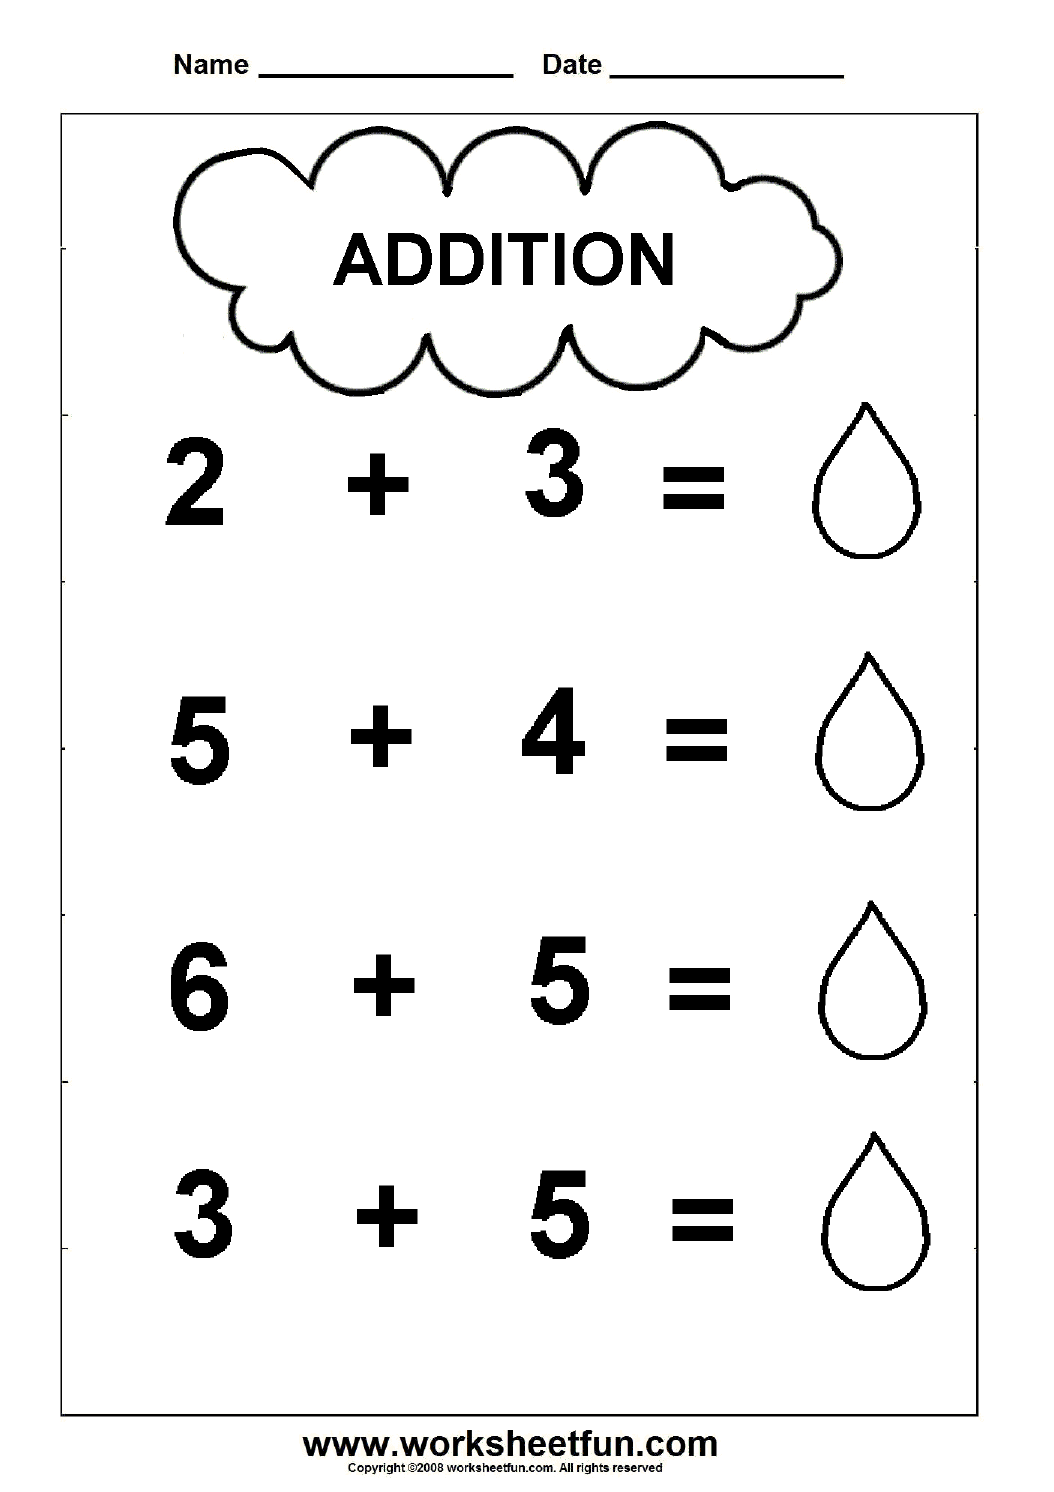 Addition Worksheets Kindergarten Worksheets – Addition Worksheets Kindergarten Printable